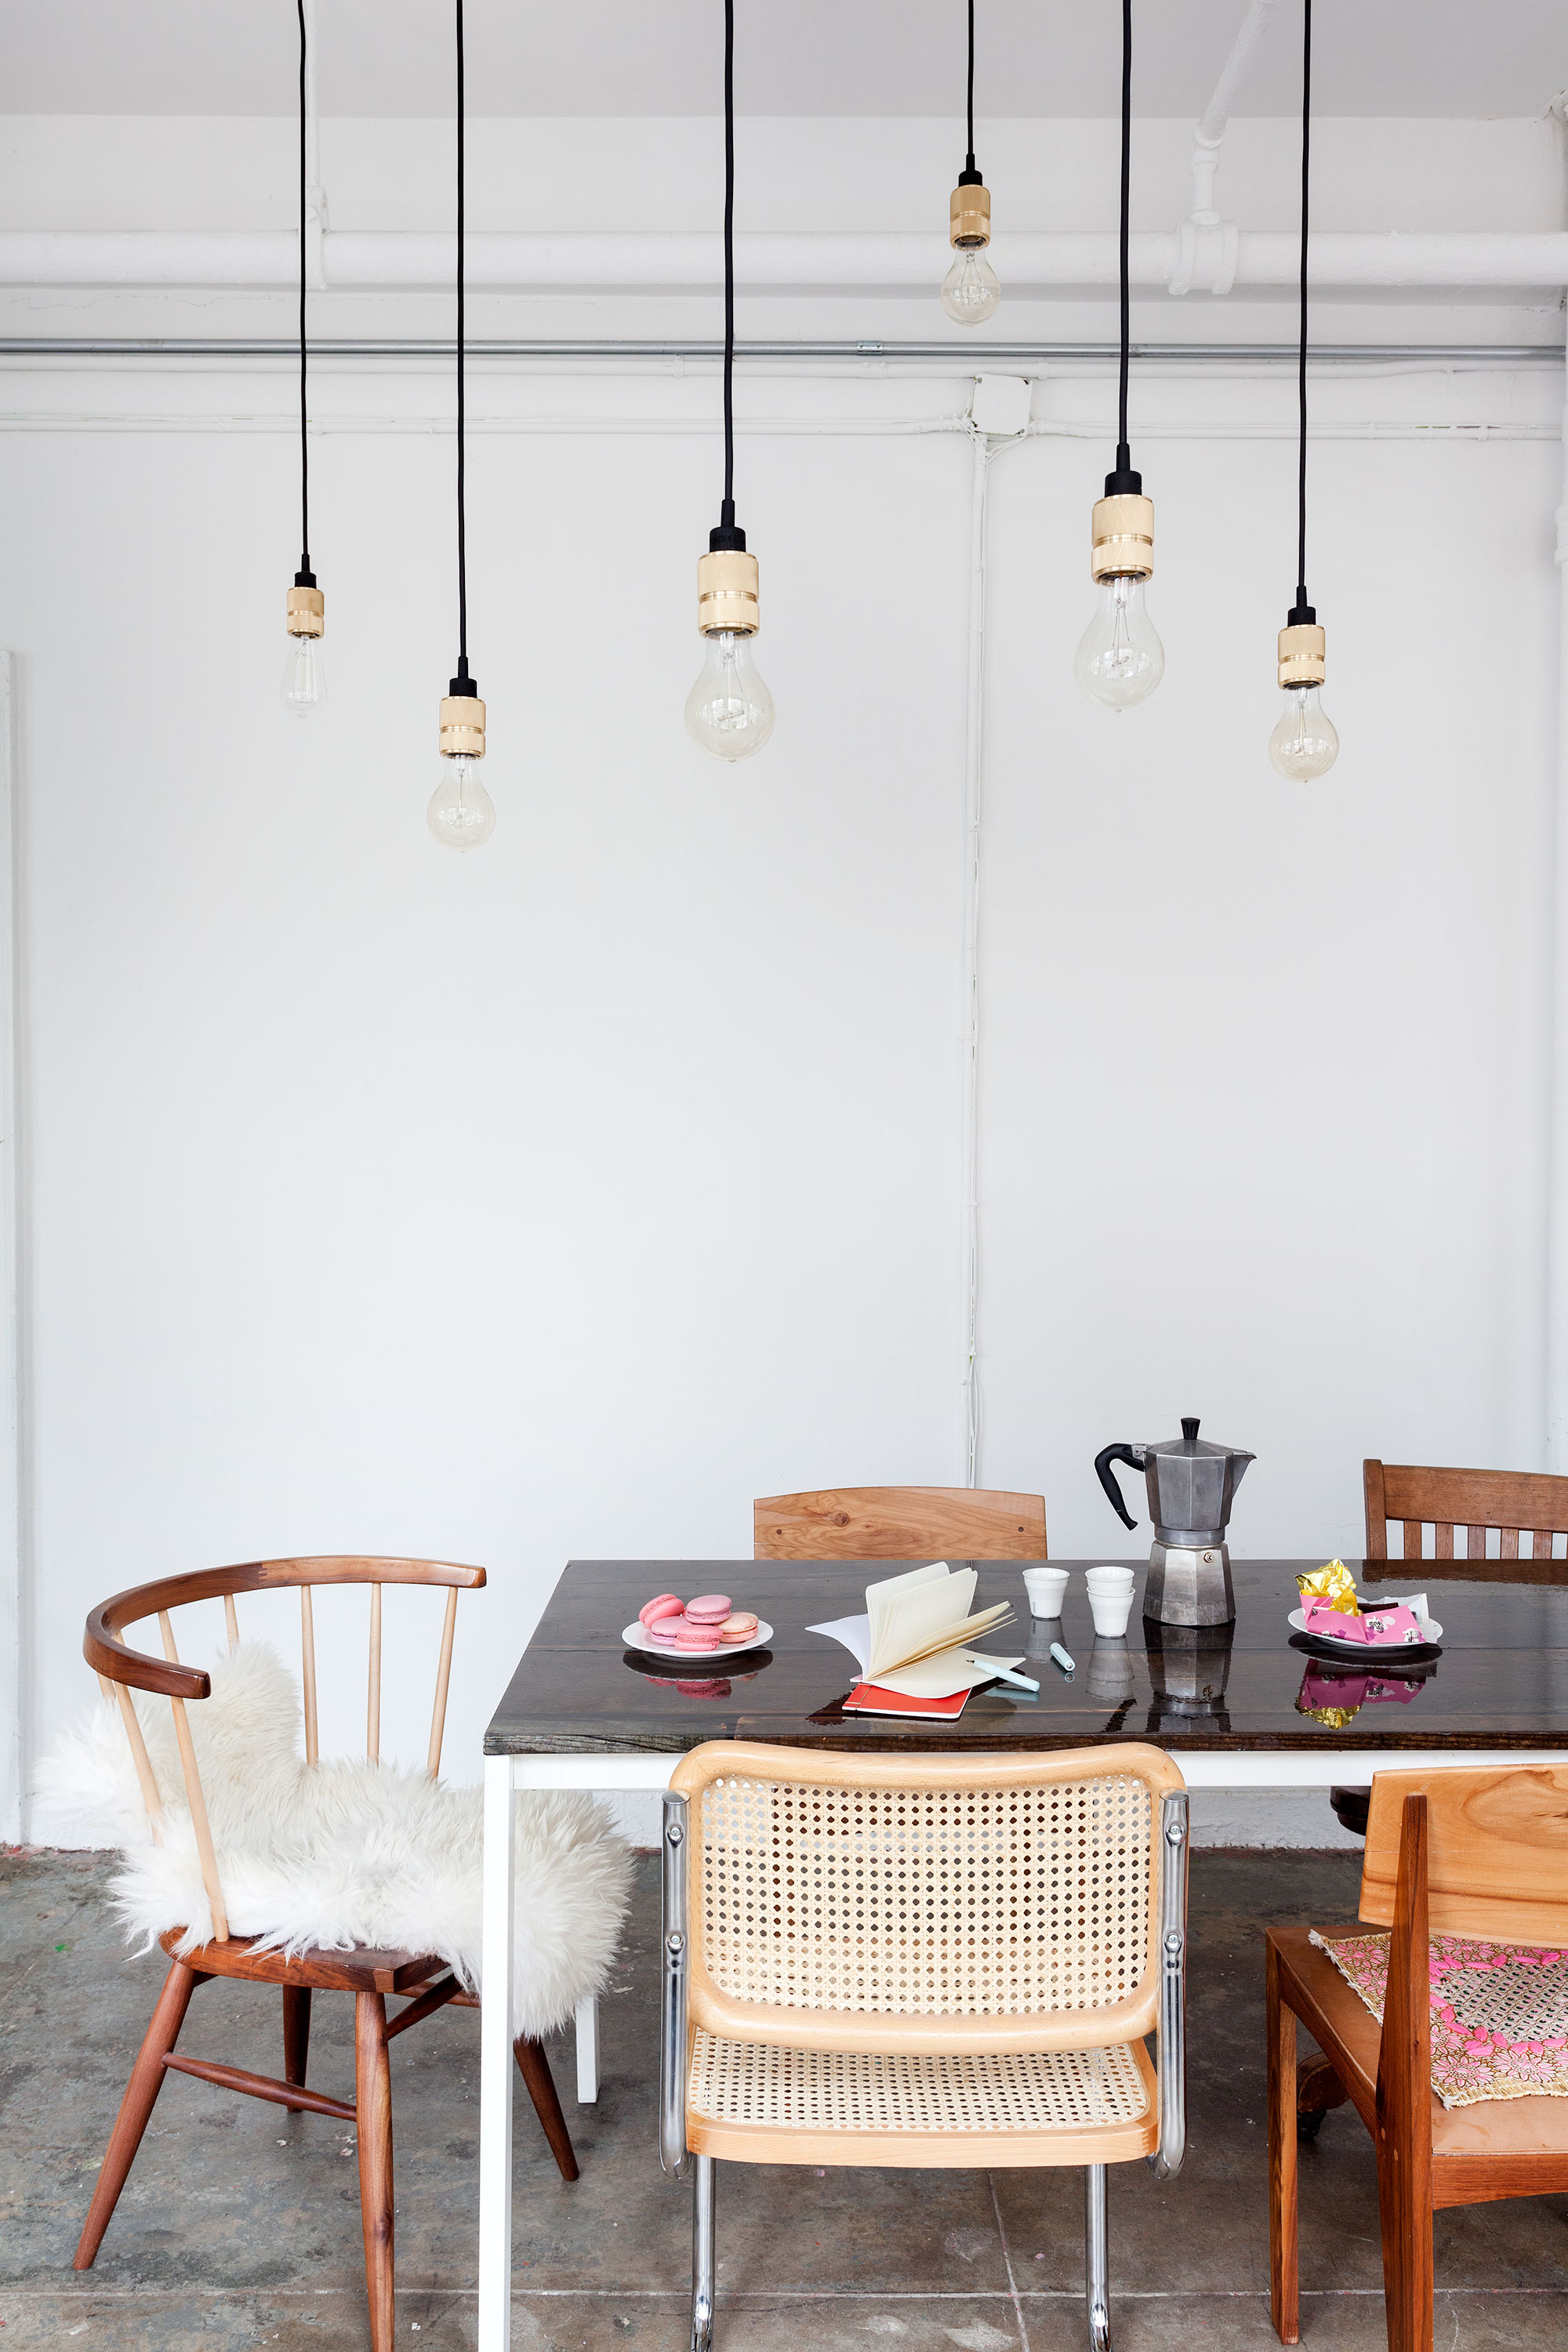 """Image Source:  The Witness  via MyDomaine, """"The Do's and Don'ts of Decorating with Mismatched Chairs""""."""